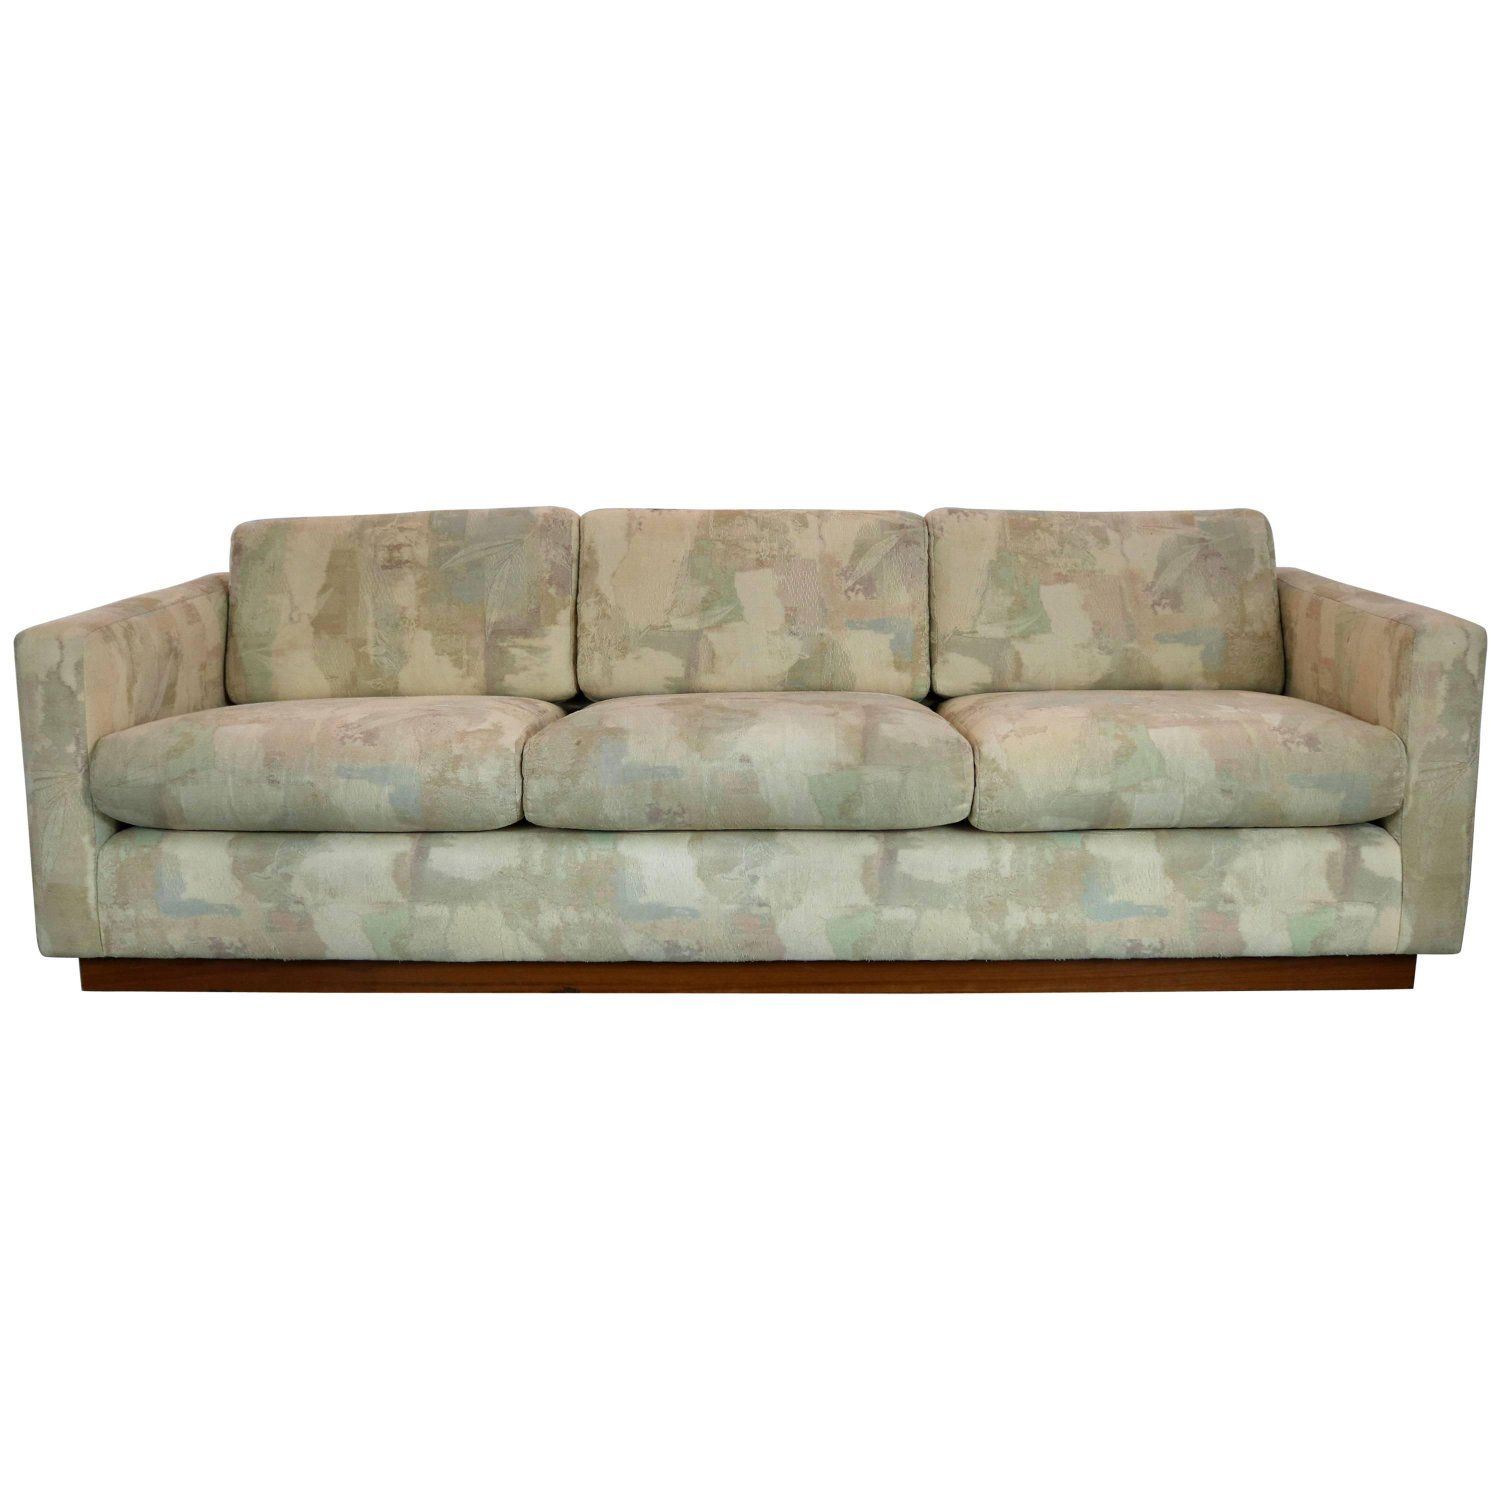 Floating Tuxedo Style Sofa In The Manner Of Milo Baughman Can We